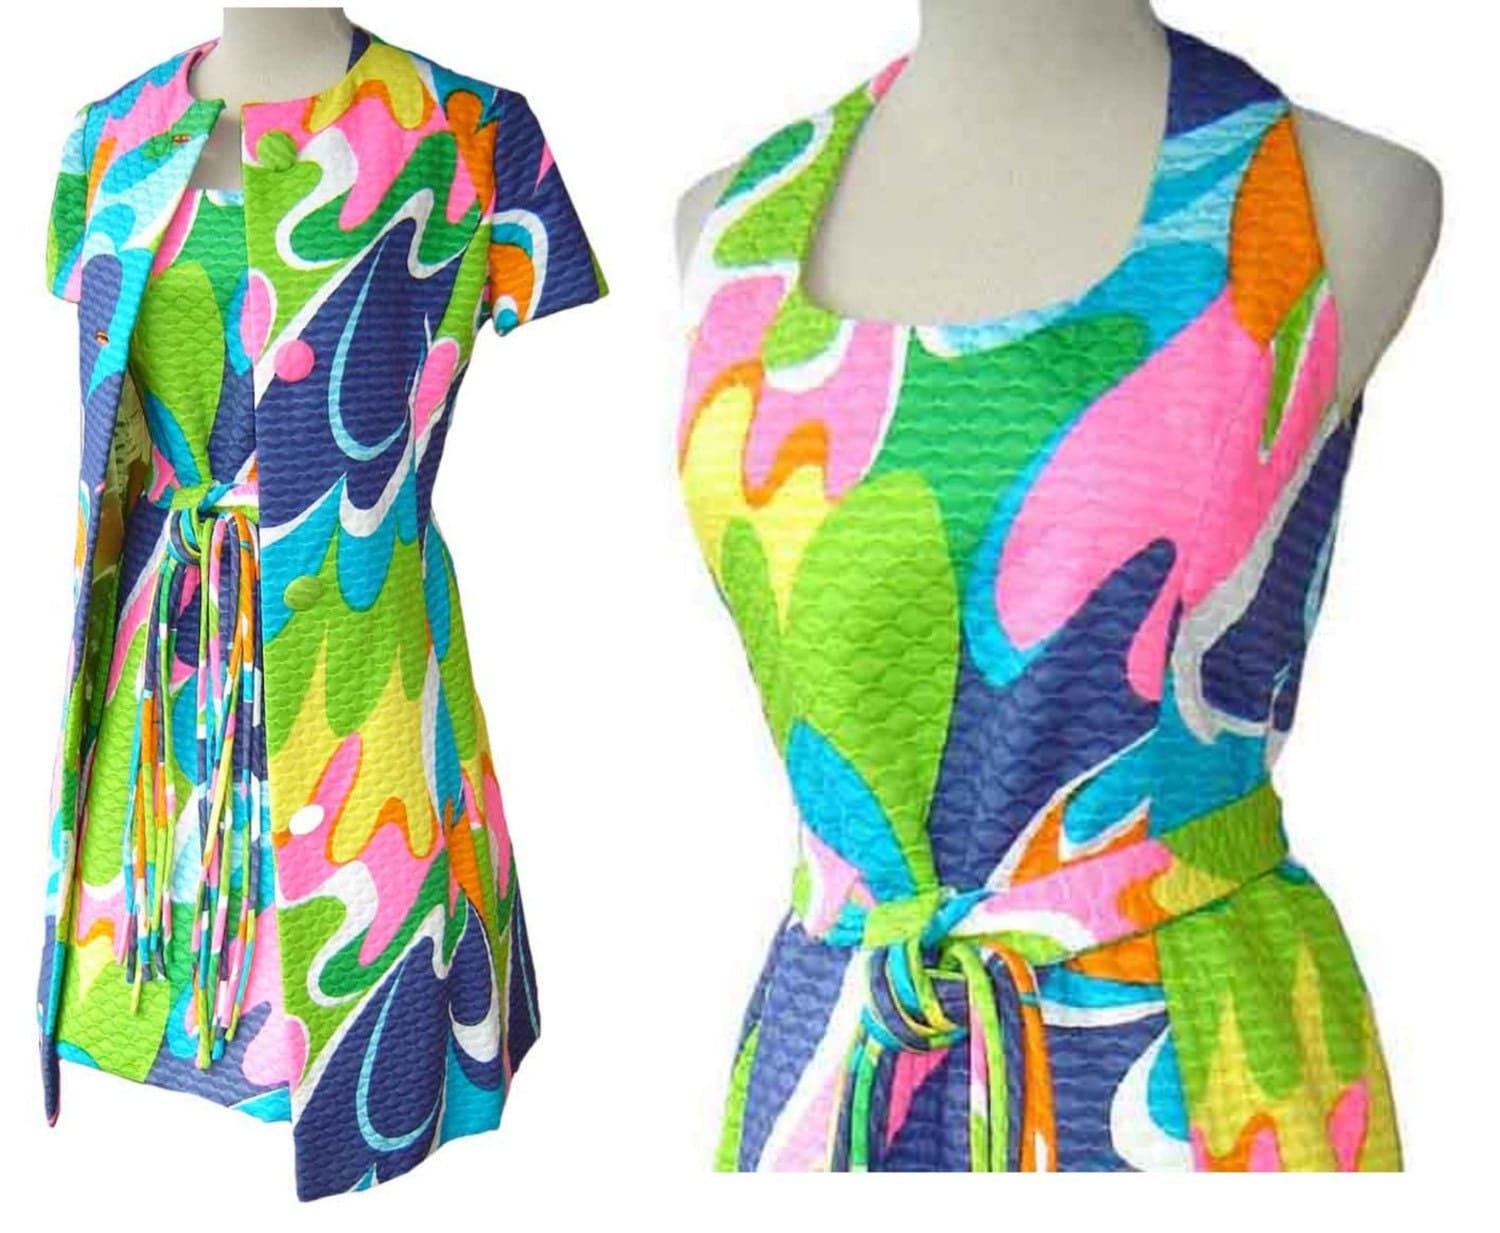 Etsy: Vintage 60's Malcolm Starr Mod Psychedelic Mini Dress w/ Jacket Set M / L - NOSWT by metroretrovintage on Etsy